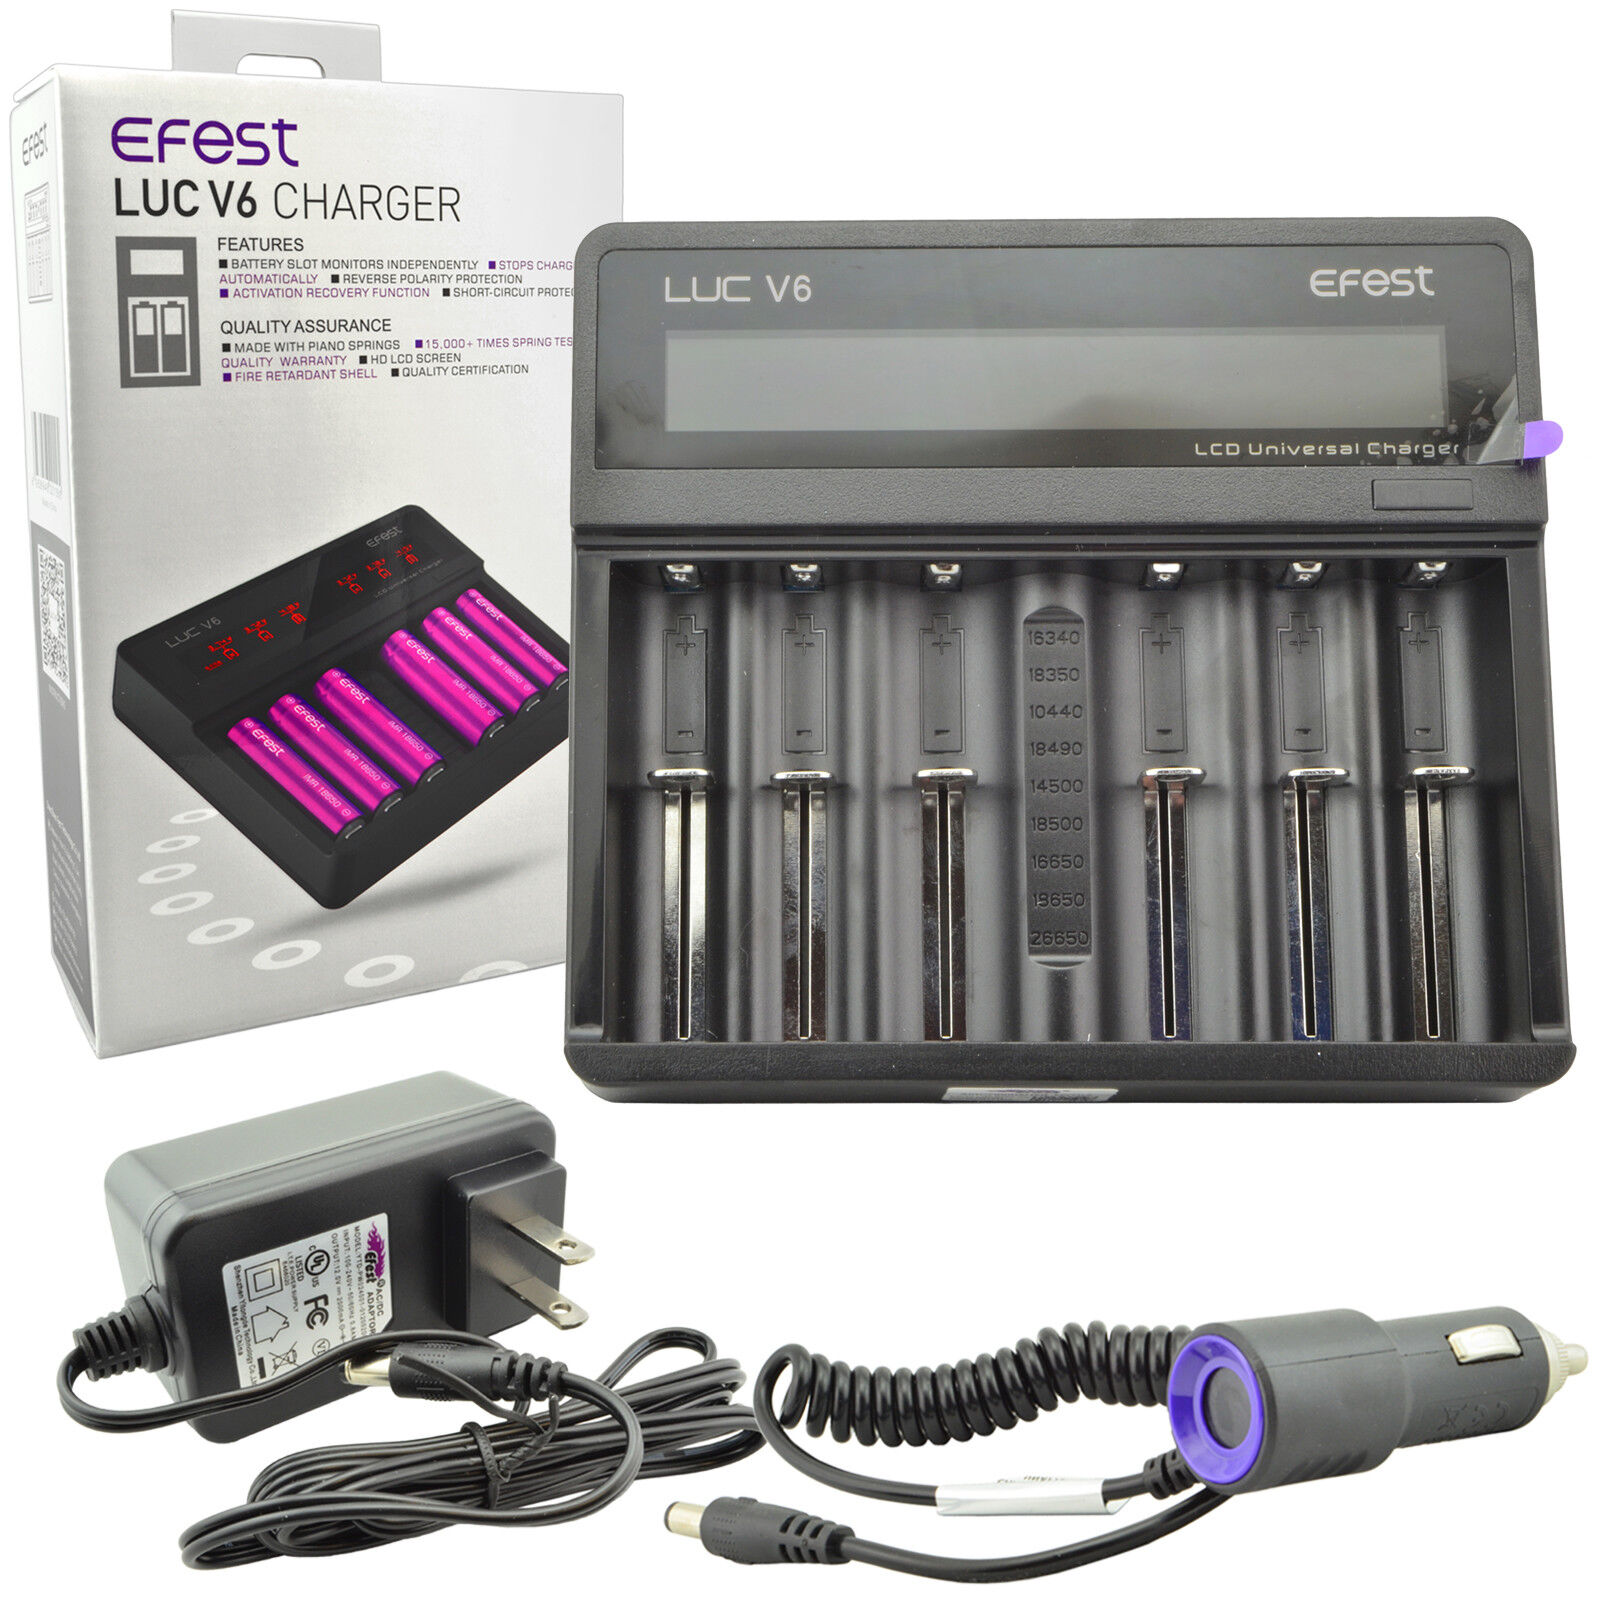 Efest LUC V6 LCD 3.7v 6 Bay 18650 26650 16340 Li-ion Battery Charger+Car Charger